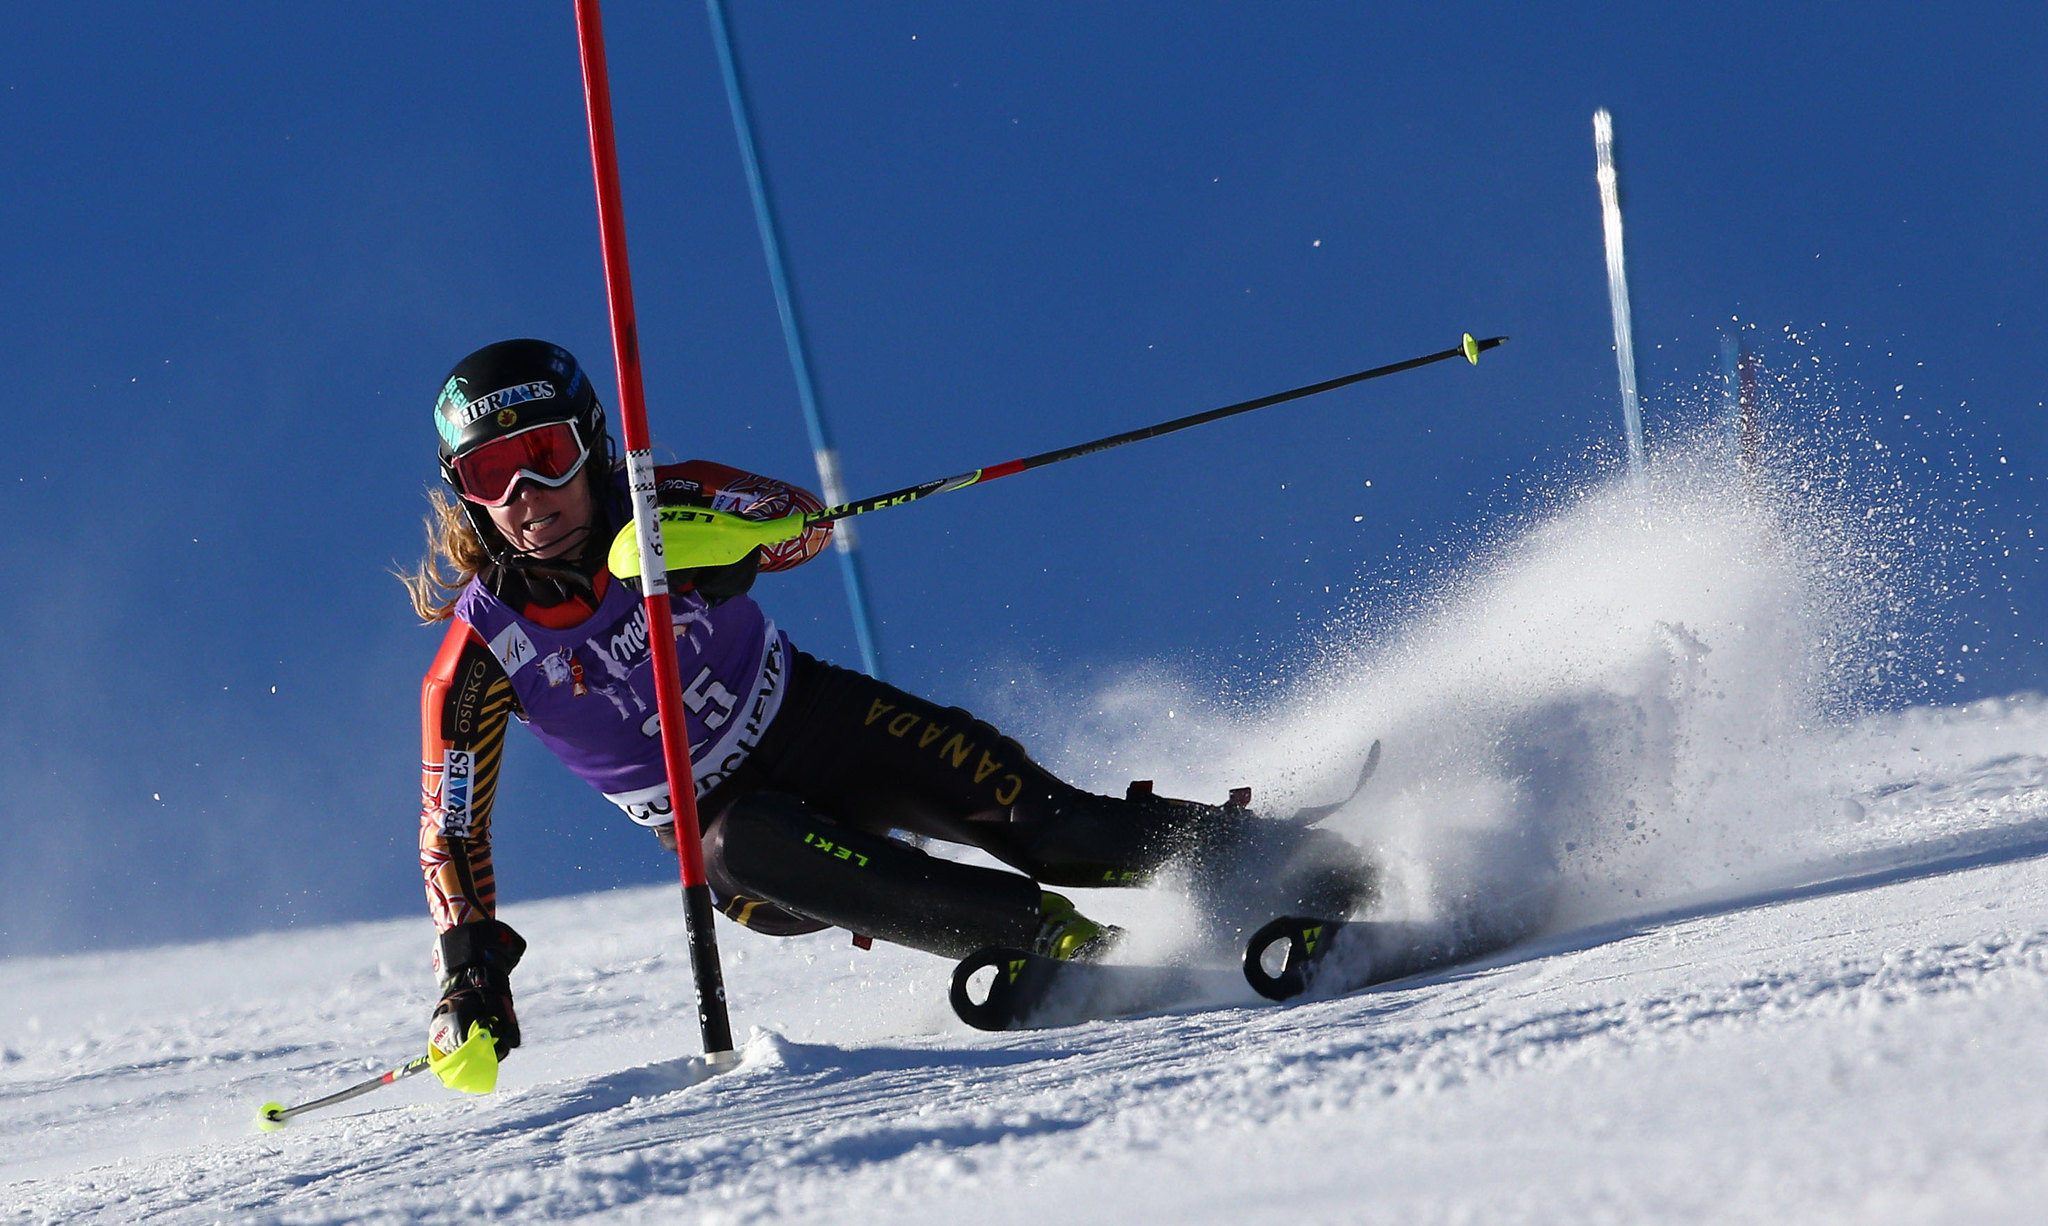 Brittany Phelan manoeuvres through the slalom course in Courchevel, FRA